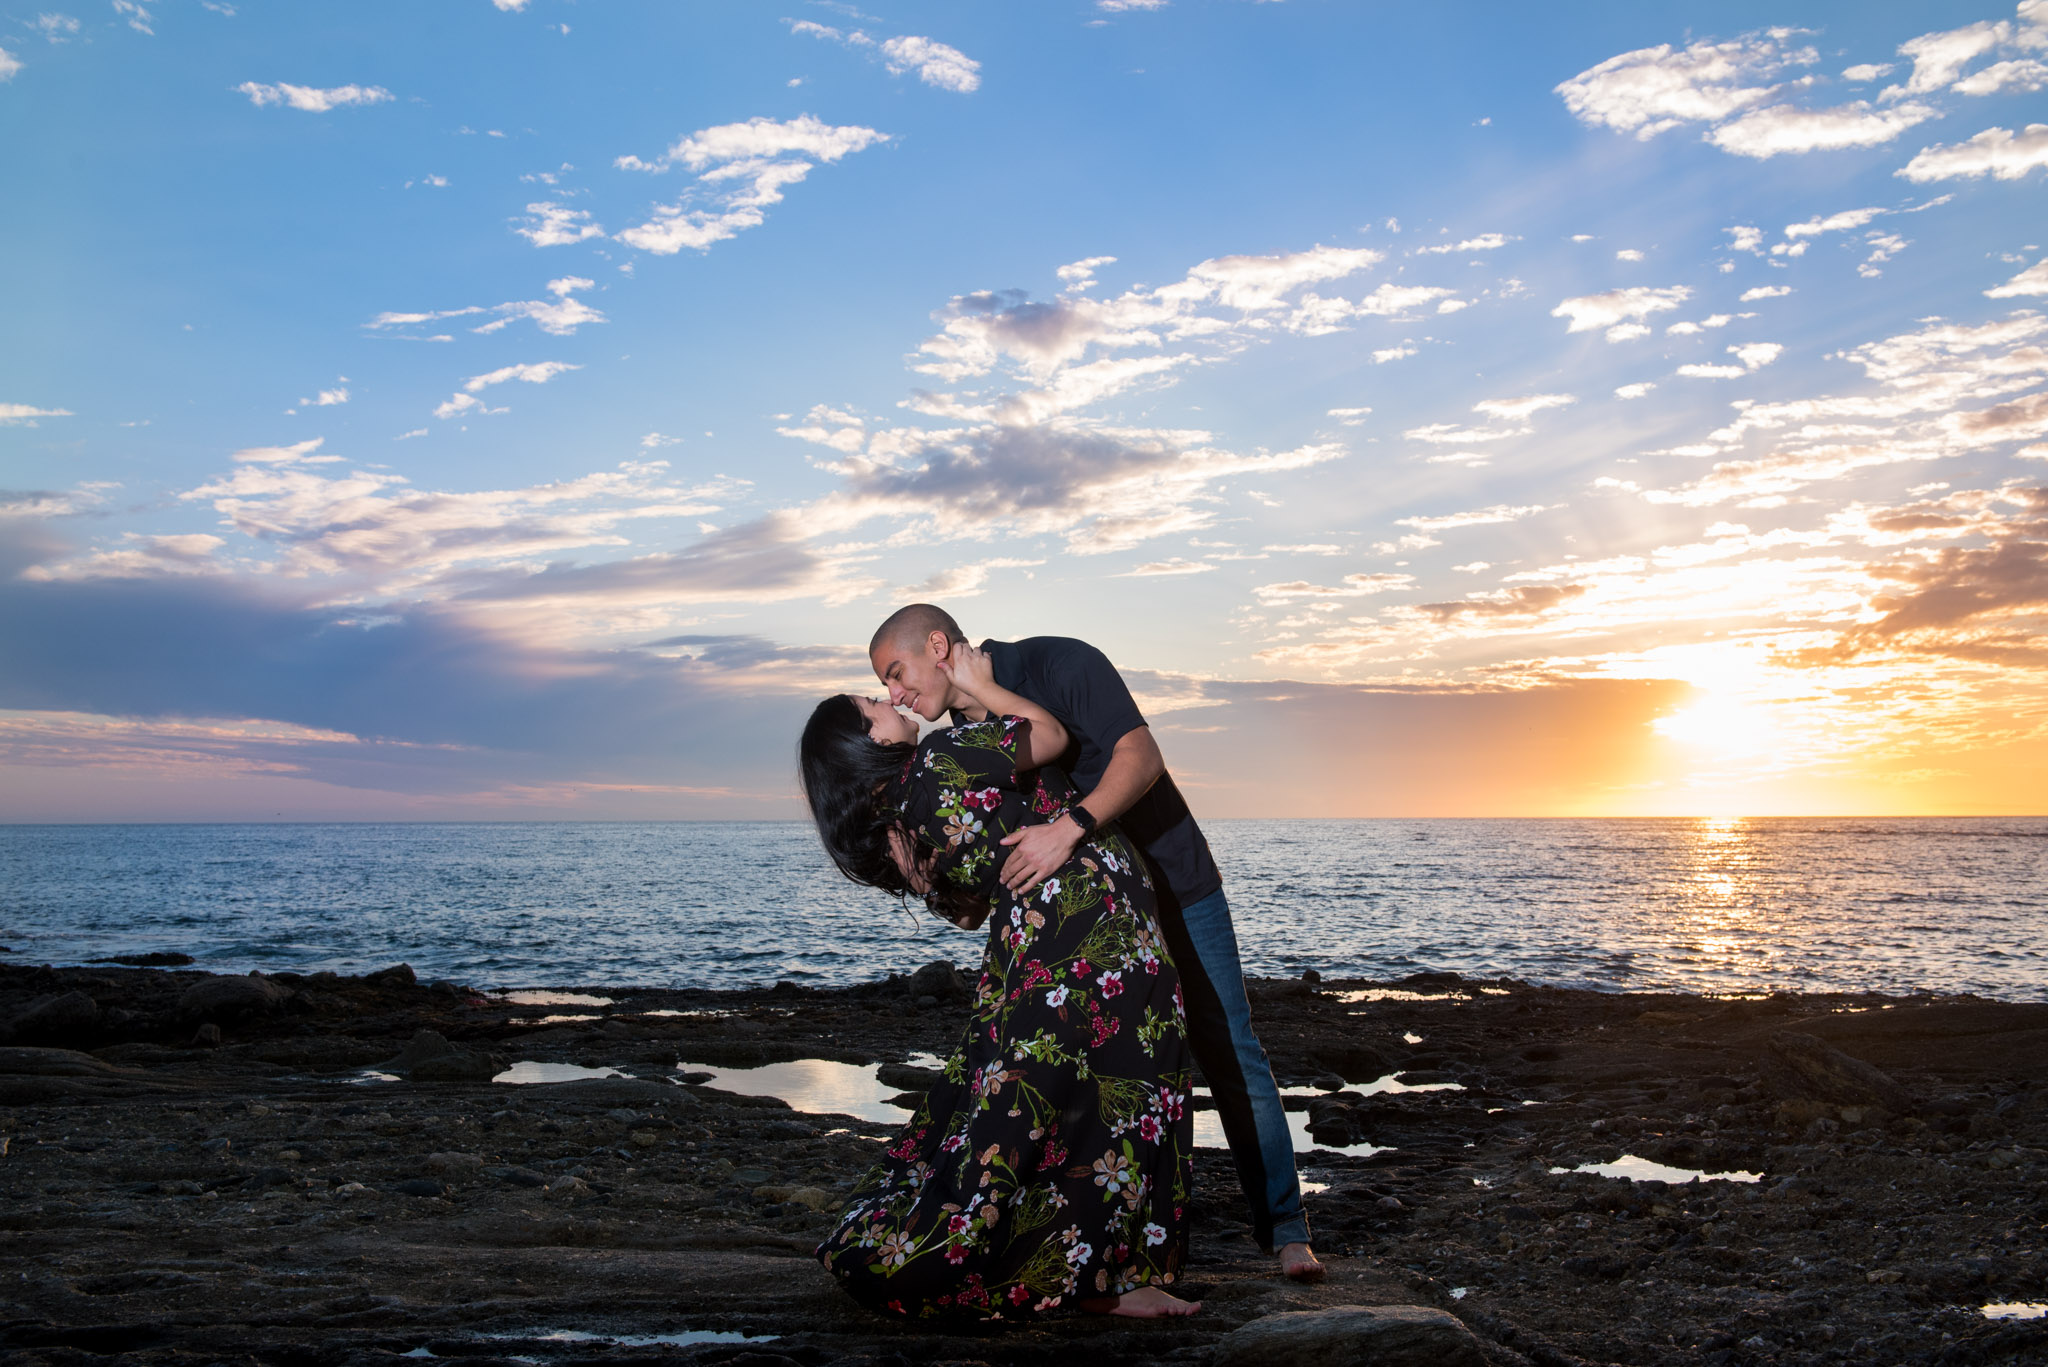 A man dips a woman in front of a sunset at Treasure Island Laguna Beach